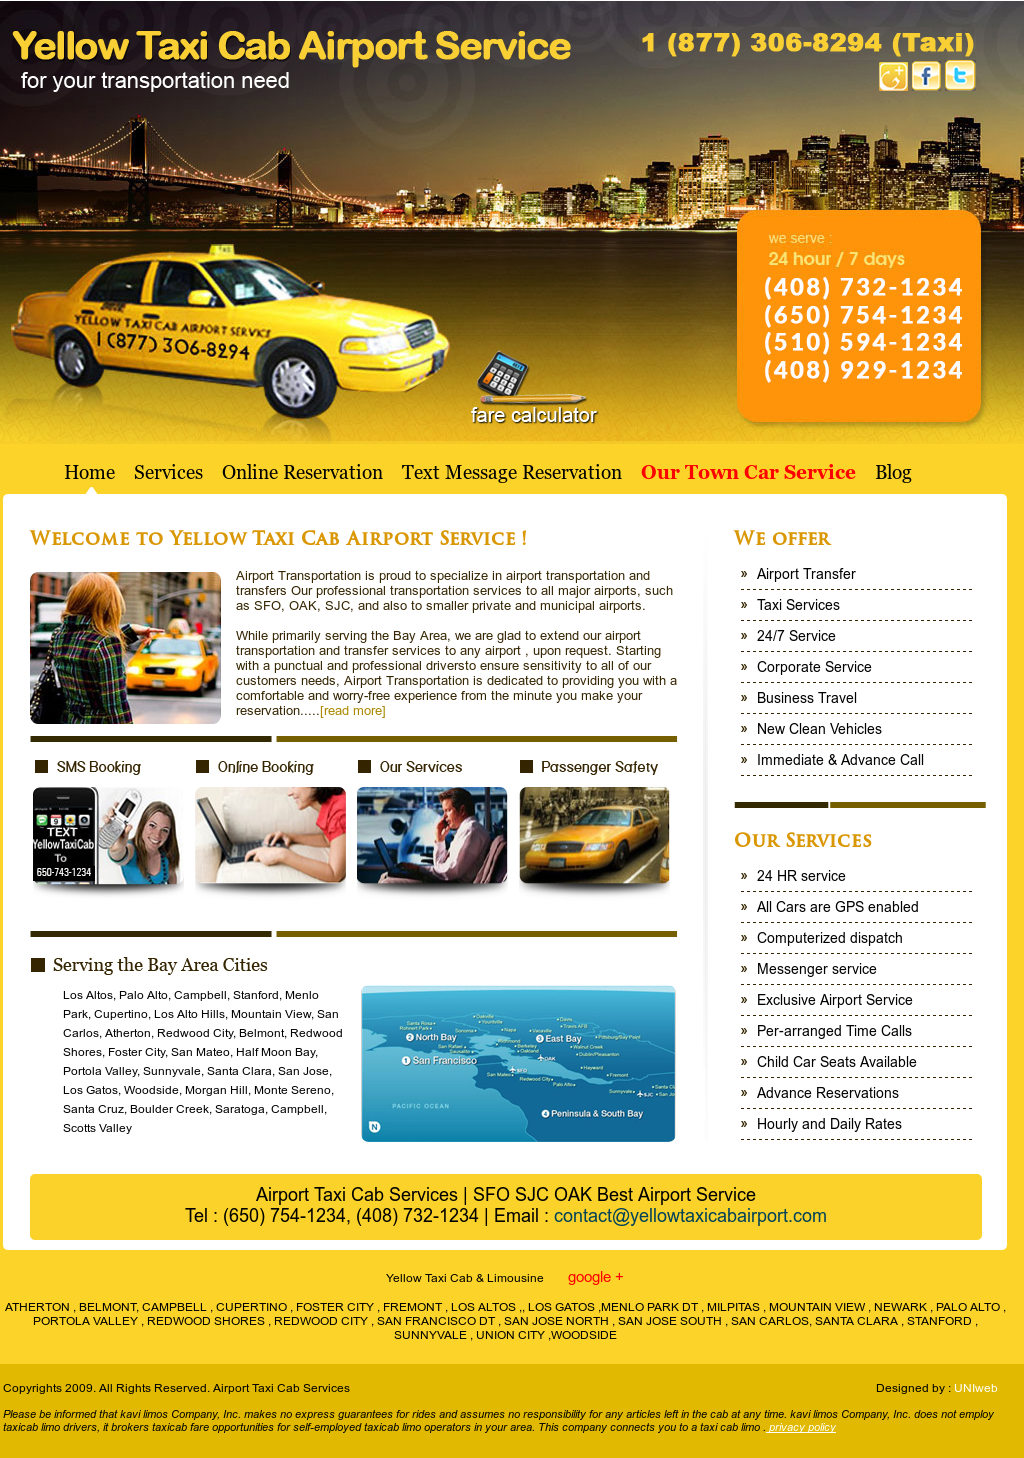 Yellow Taxi Cab Airport Competitors, Revenue and Employees